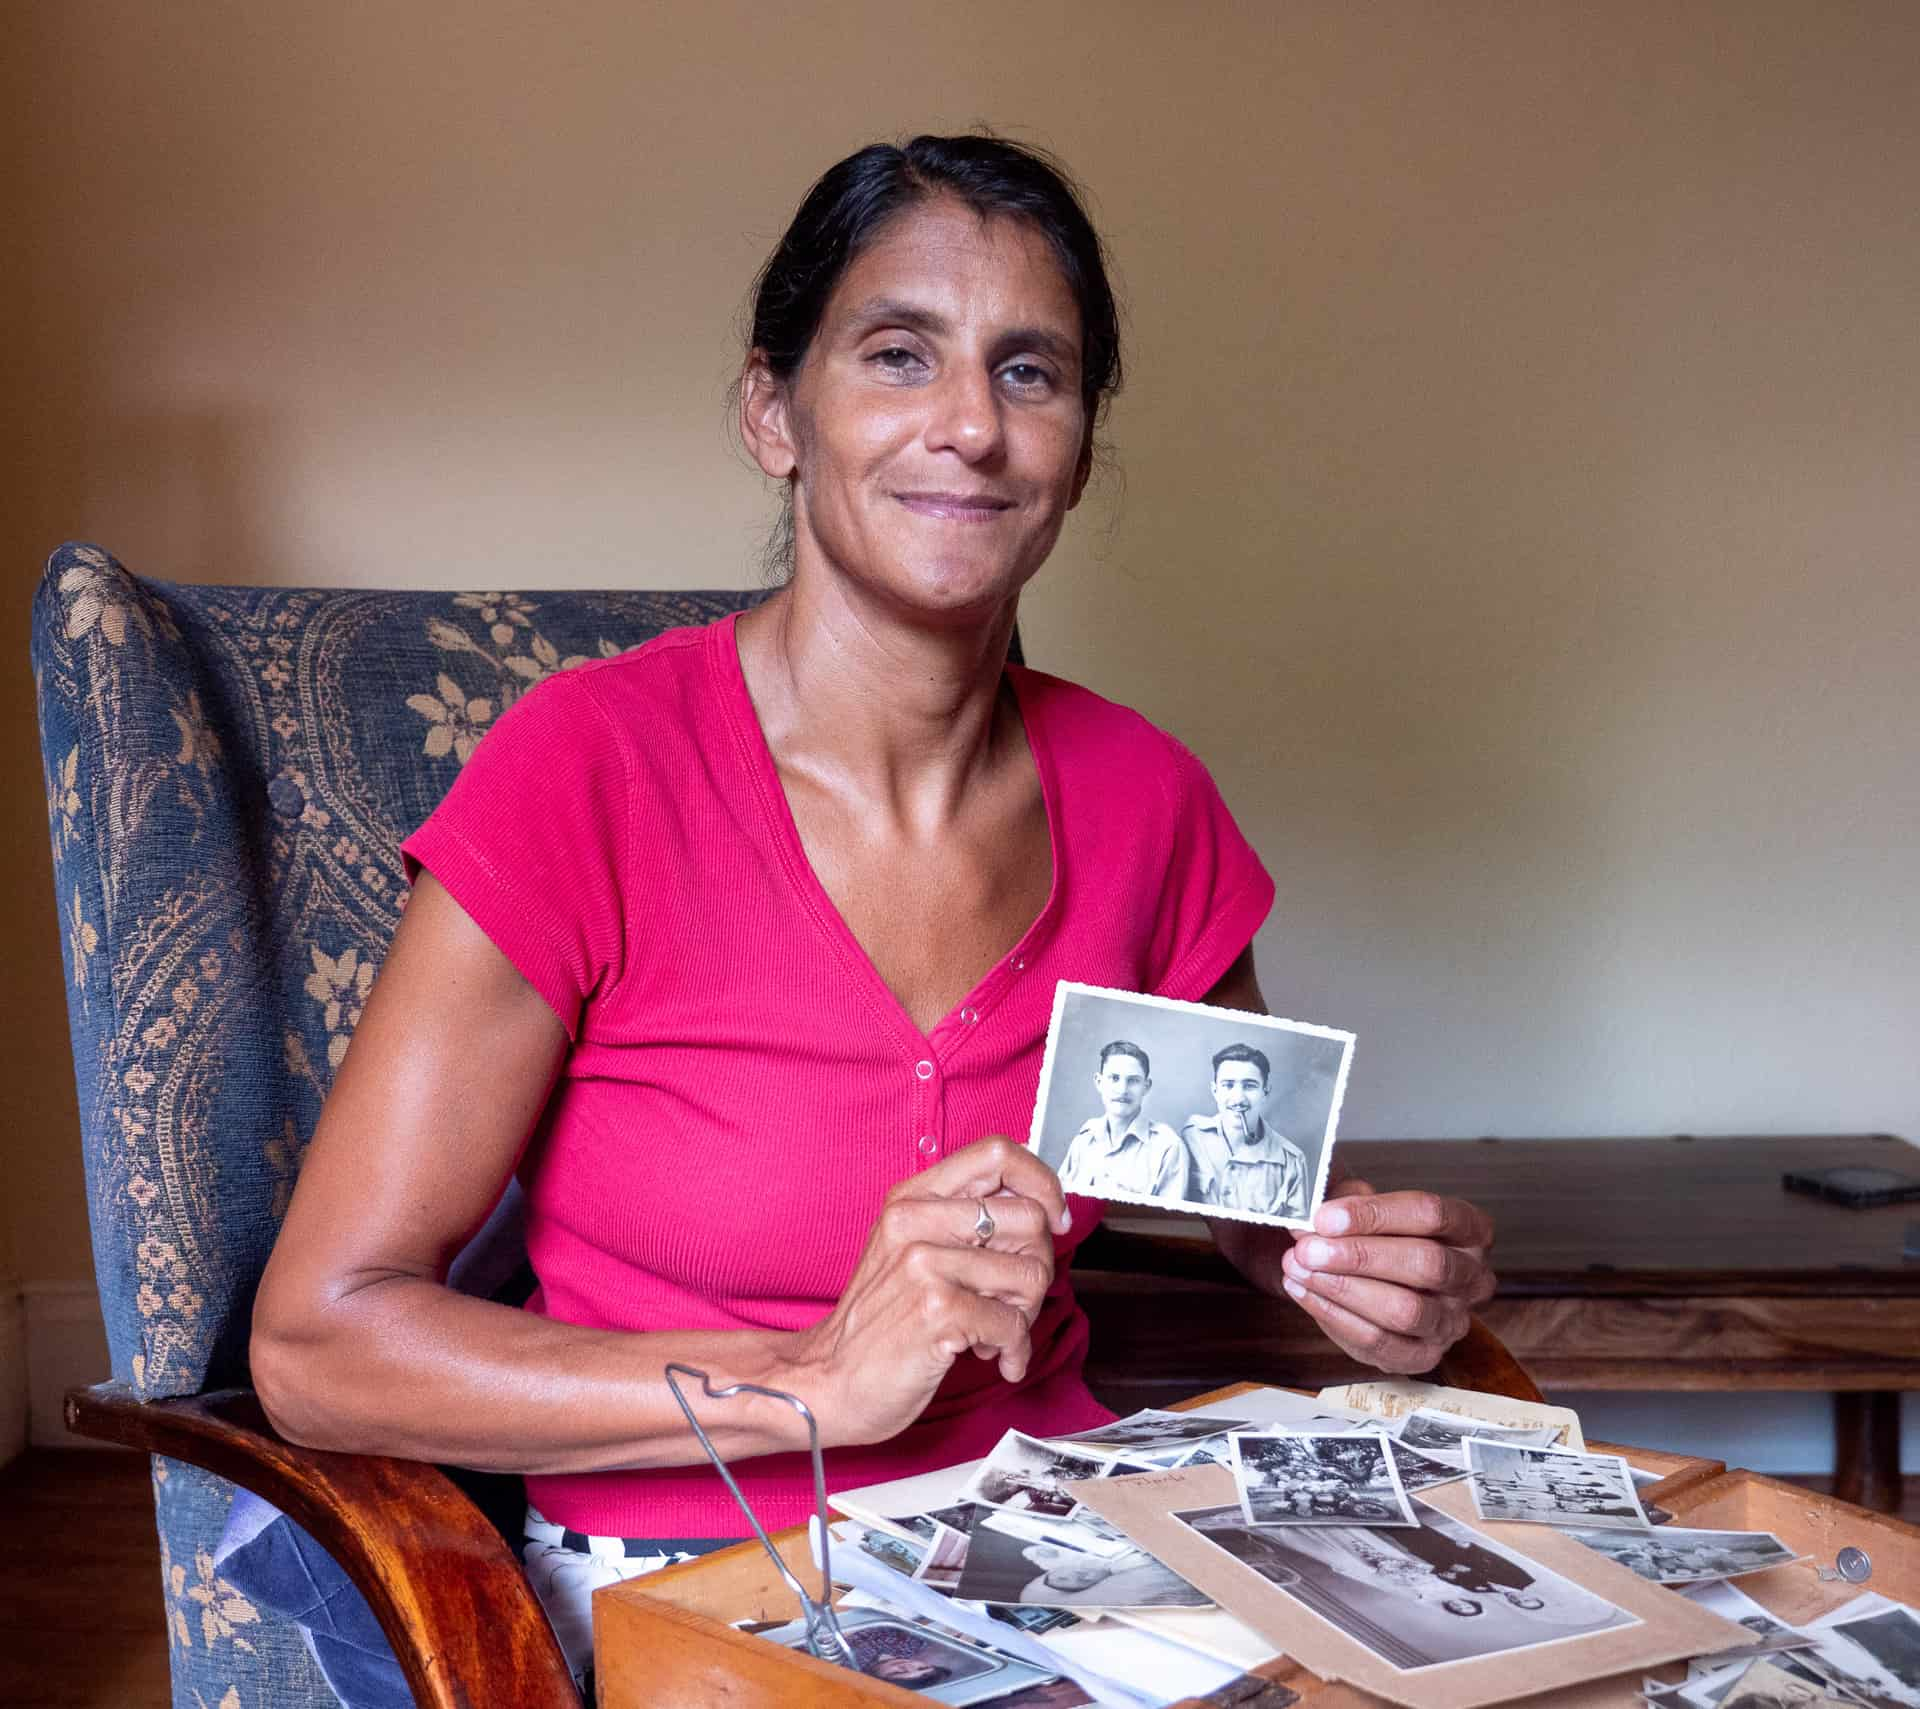 Marianne at her home in Smethwick with part of her family photographic collection.